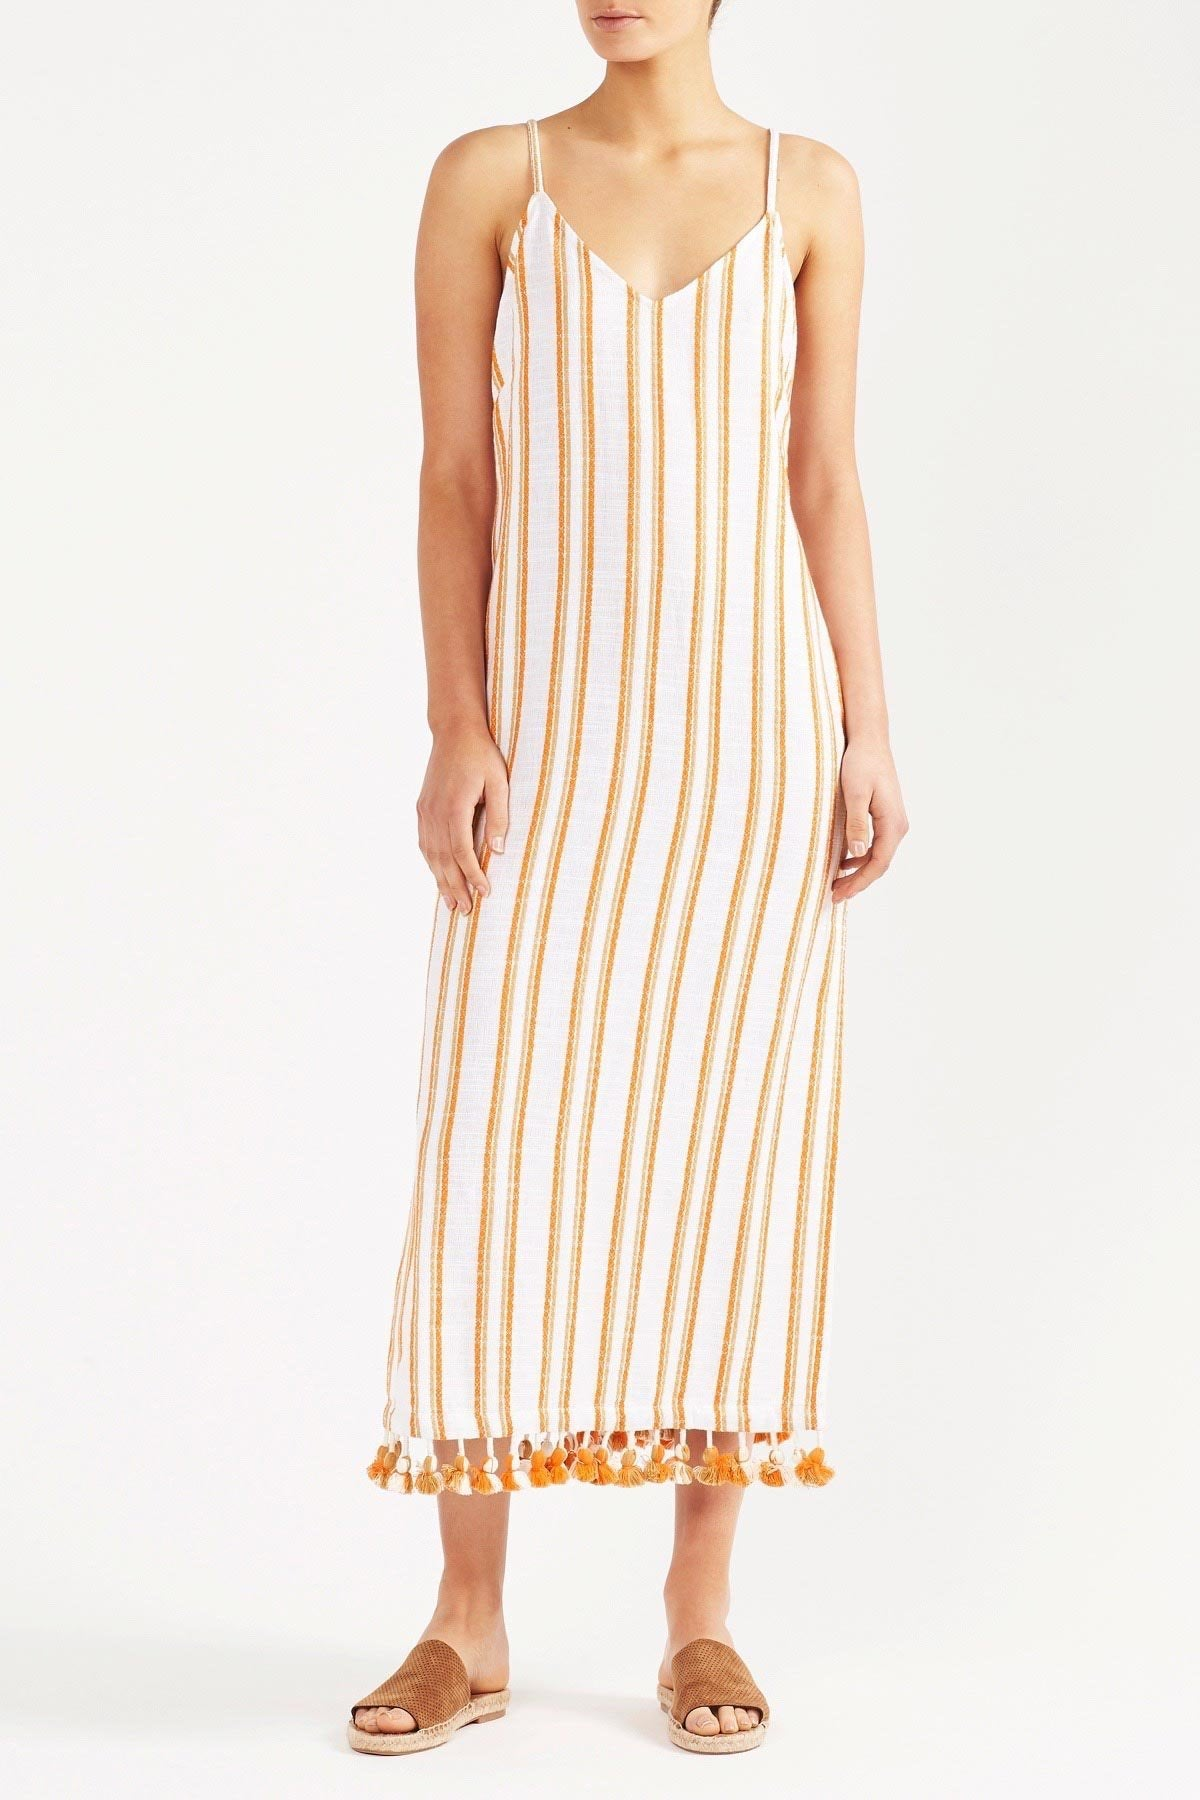 Tigerlily Vanita Midi Dress - Stripe